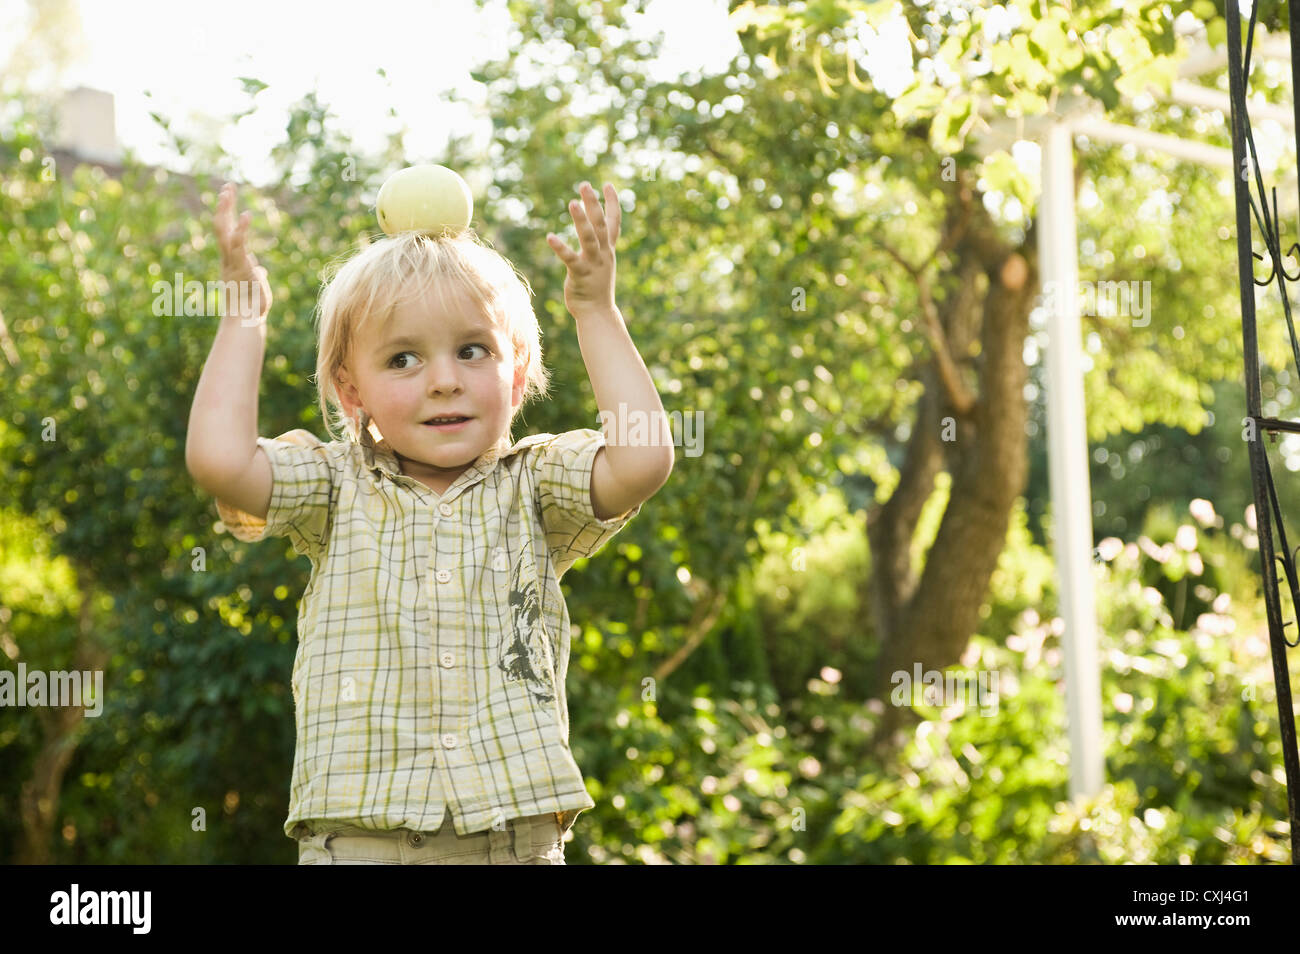 Germany, Bavaria, Boy playing with apple on top of head - Stock Image